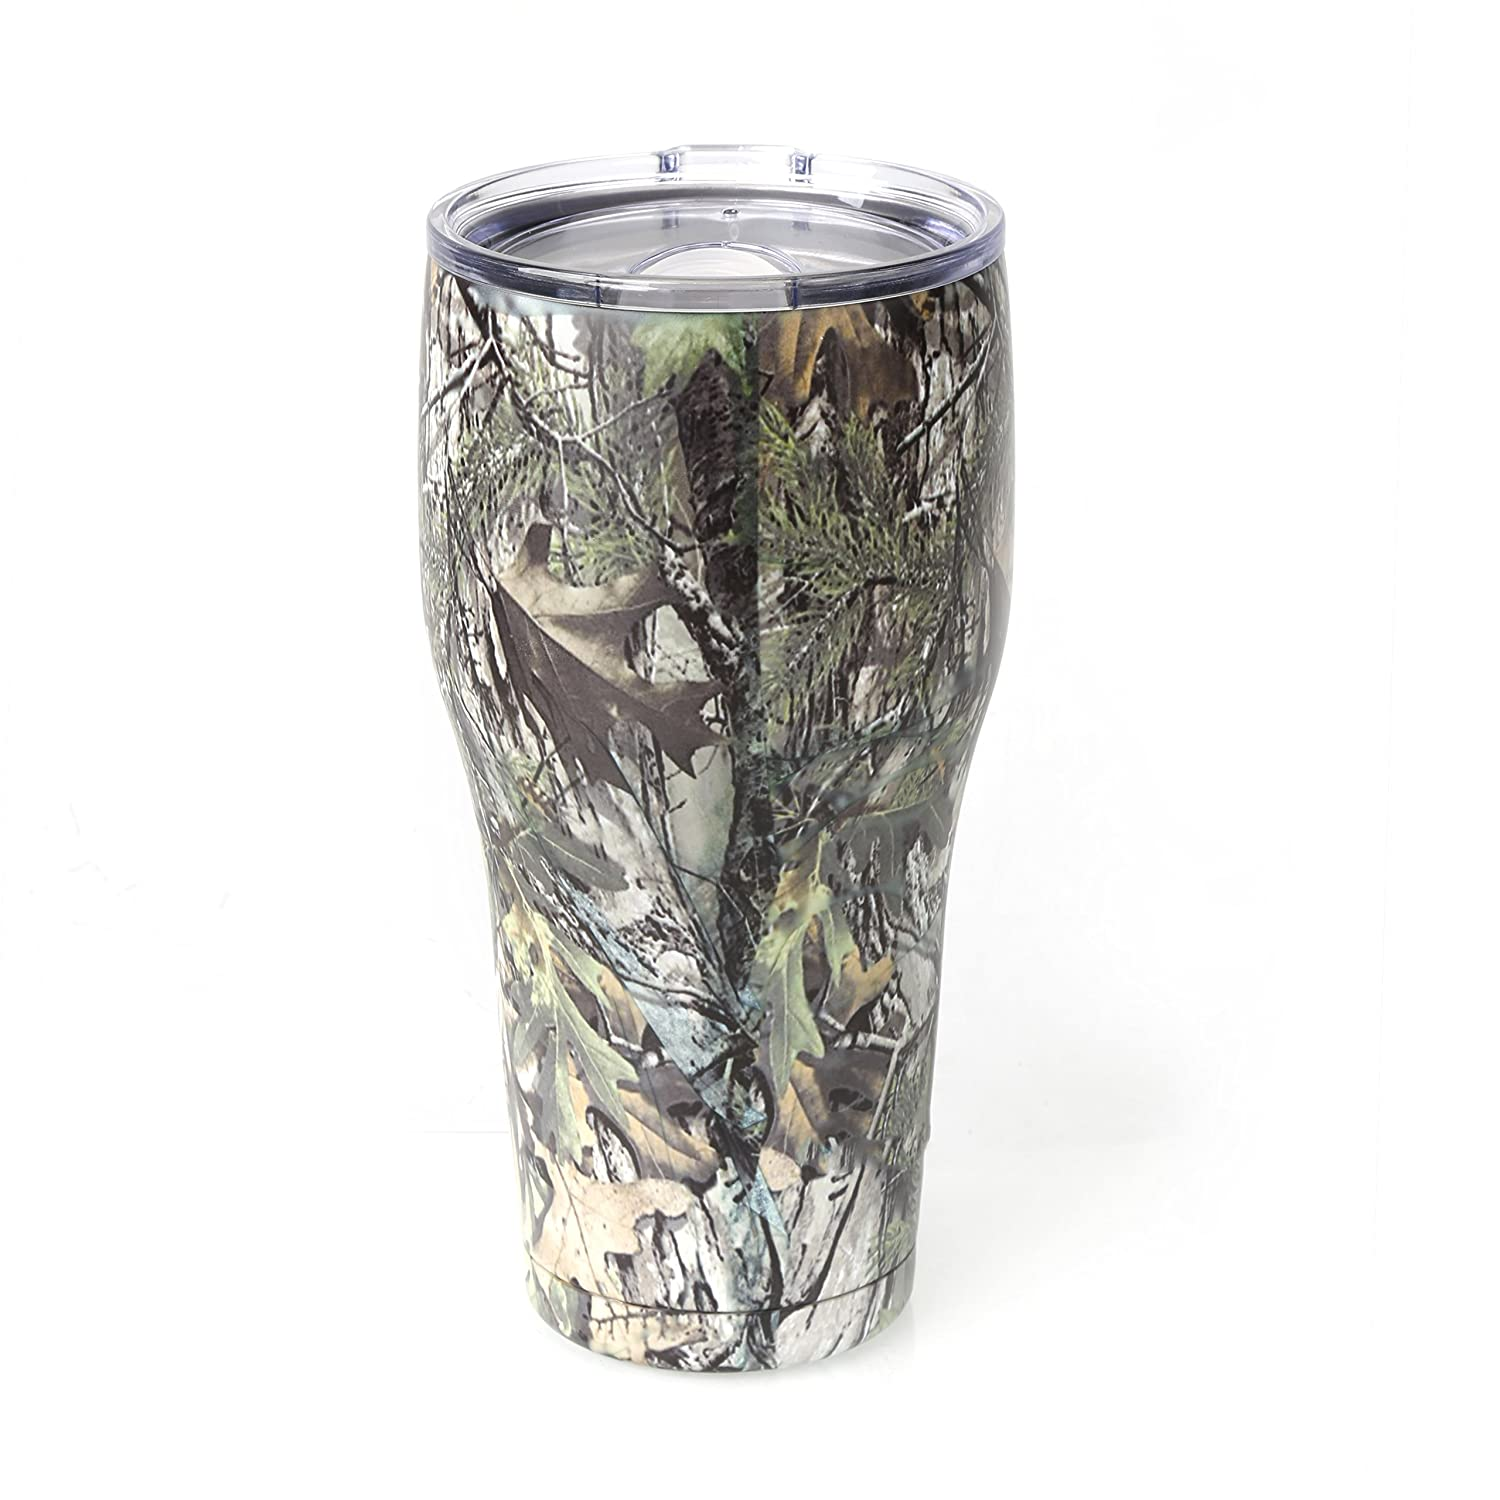 Amazon tahoe trails 20 oz stainless steel tumbler vacuum amazon tahoe trails 20 oz stainless steel tumbler vacuum insulated double wall with lid green camouflage home kitchen reviewsmspy